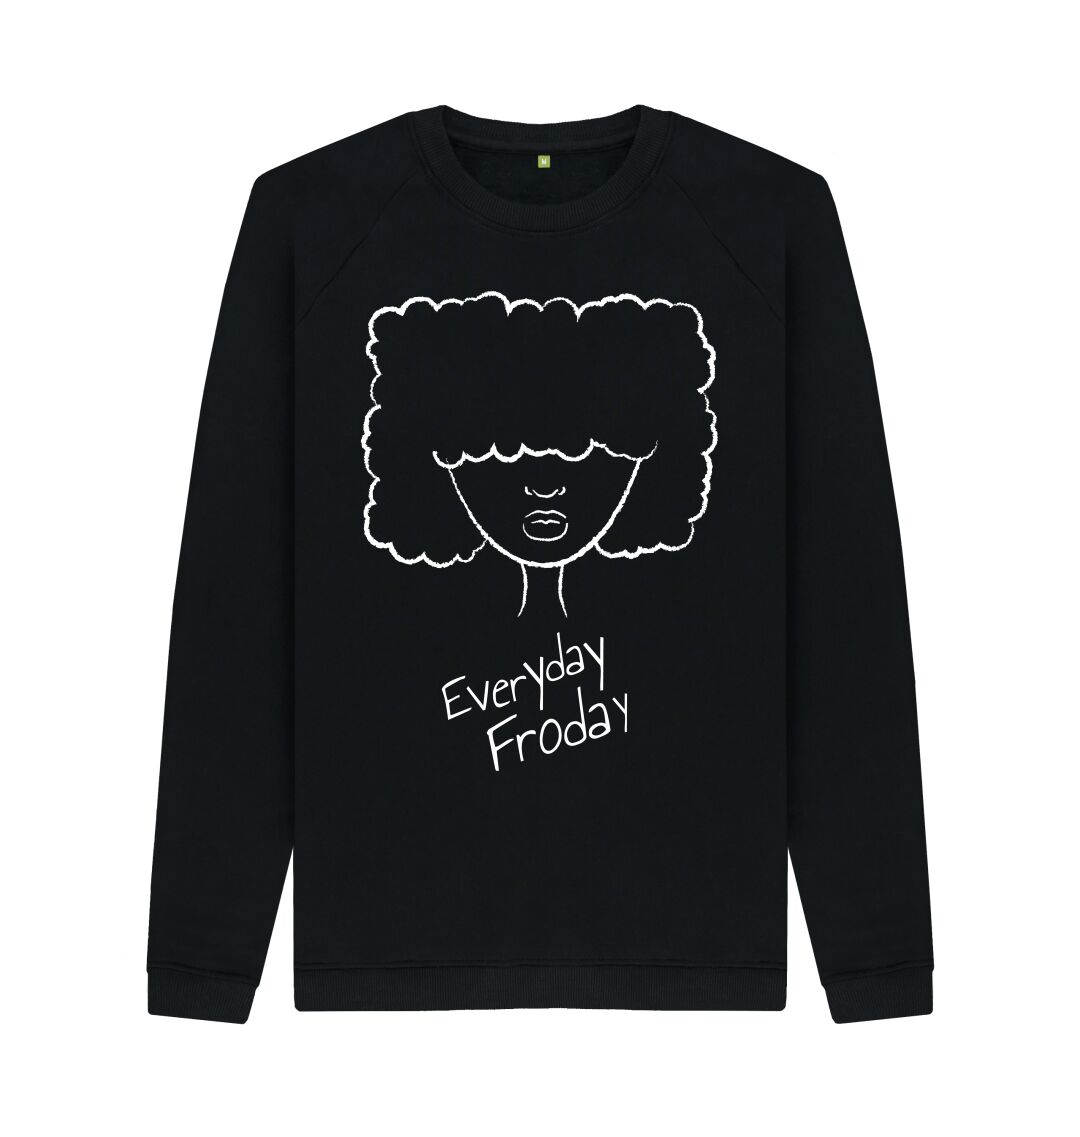 Black Unisex Sweatshirt | Froday Girl